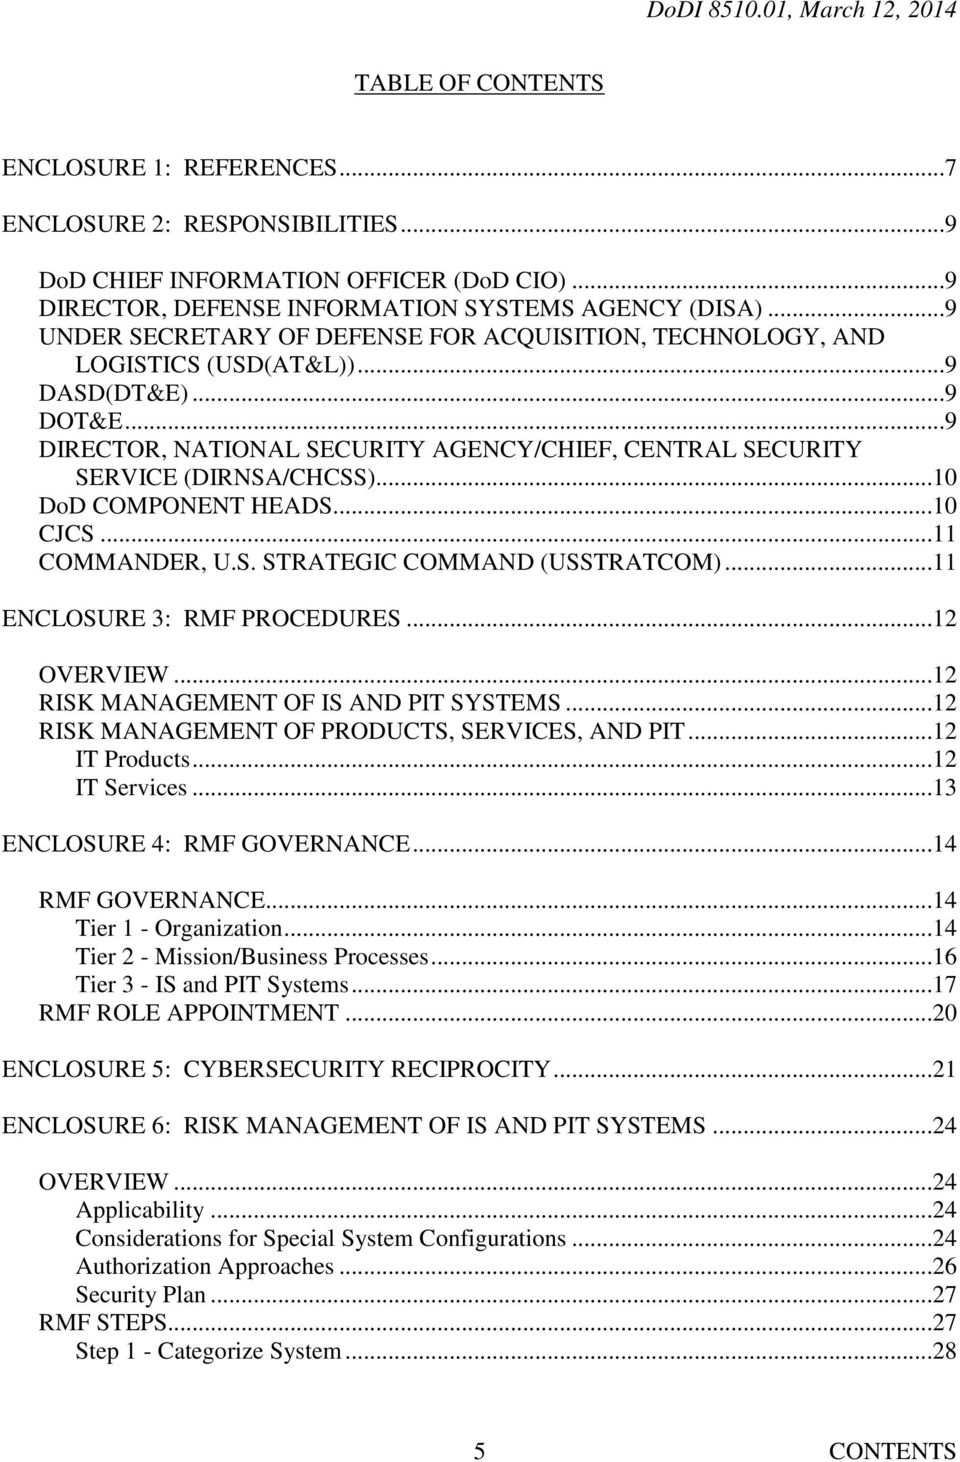 ..10 DoD COMPONENT HEADS...10 CJCS...11 COMMANDER, U.S. STRATEGIC COMMAND (USSTRATCOM)...11 ENCLOSURE 3: RMF PROCEDURES...12 OVERVIEW...12 RISK MANAGEMENT OF IS AND PIT SYSTEMS.